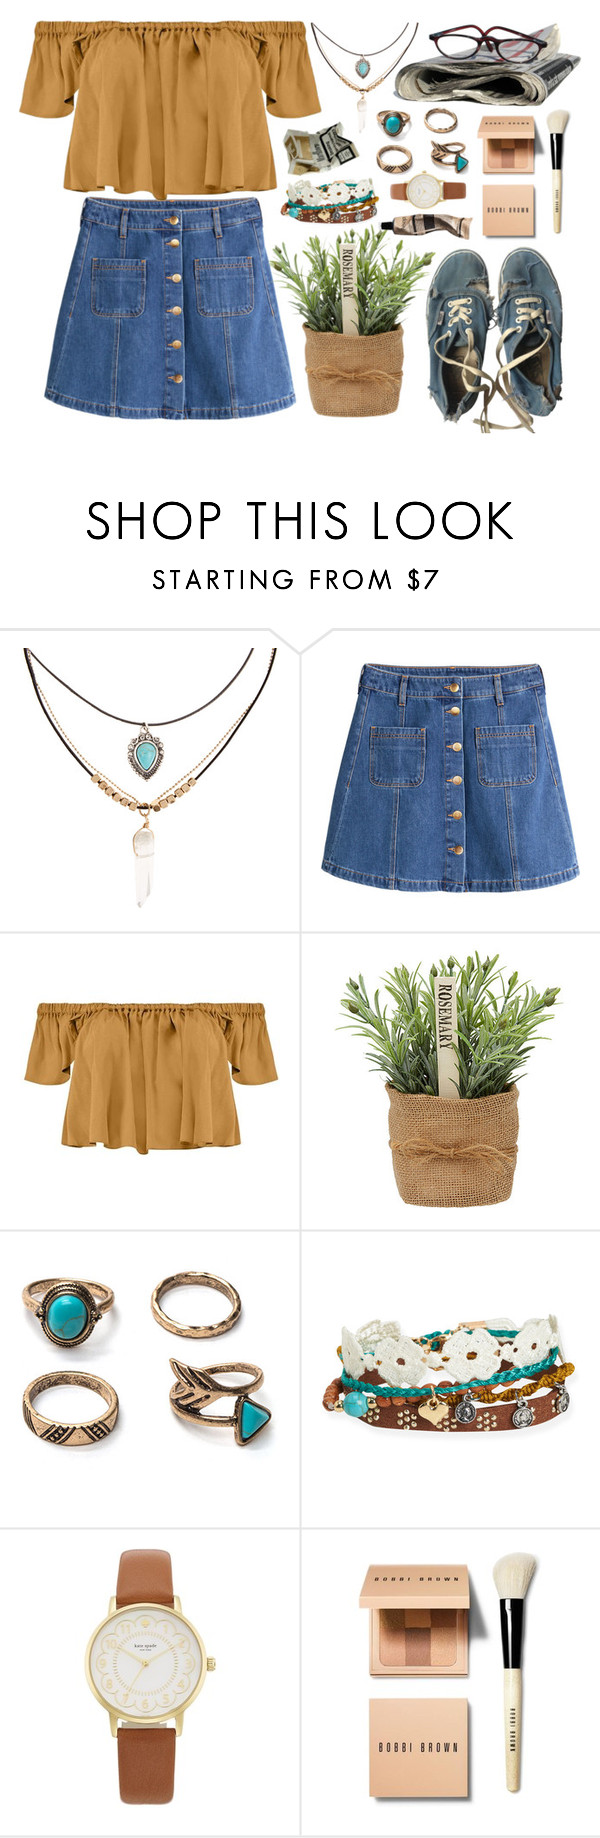 """""""22:02"""" by marispa ❤ liked on Polyvore featuring Accessorize, H&M, Boohoo, Vans, Aéropostale, Kate Spade, Bobbi Brown Cosmetics, Aesop and vintage"""